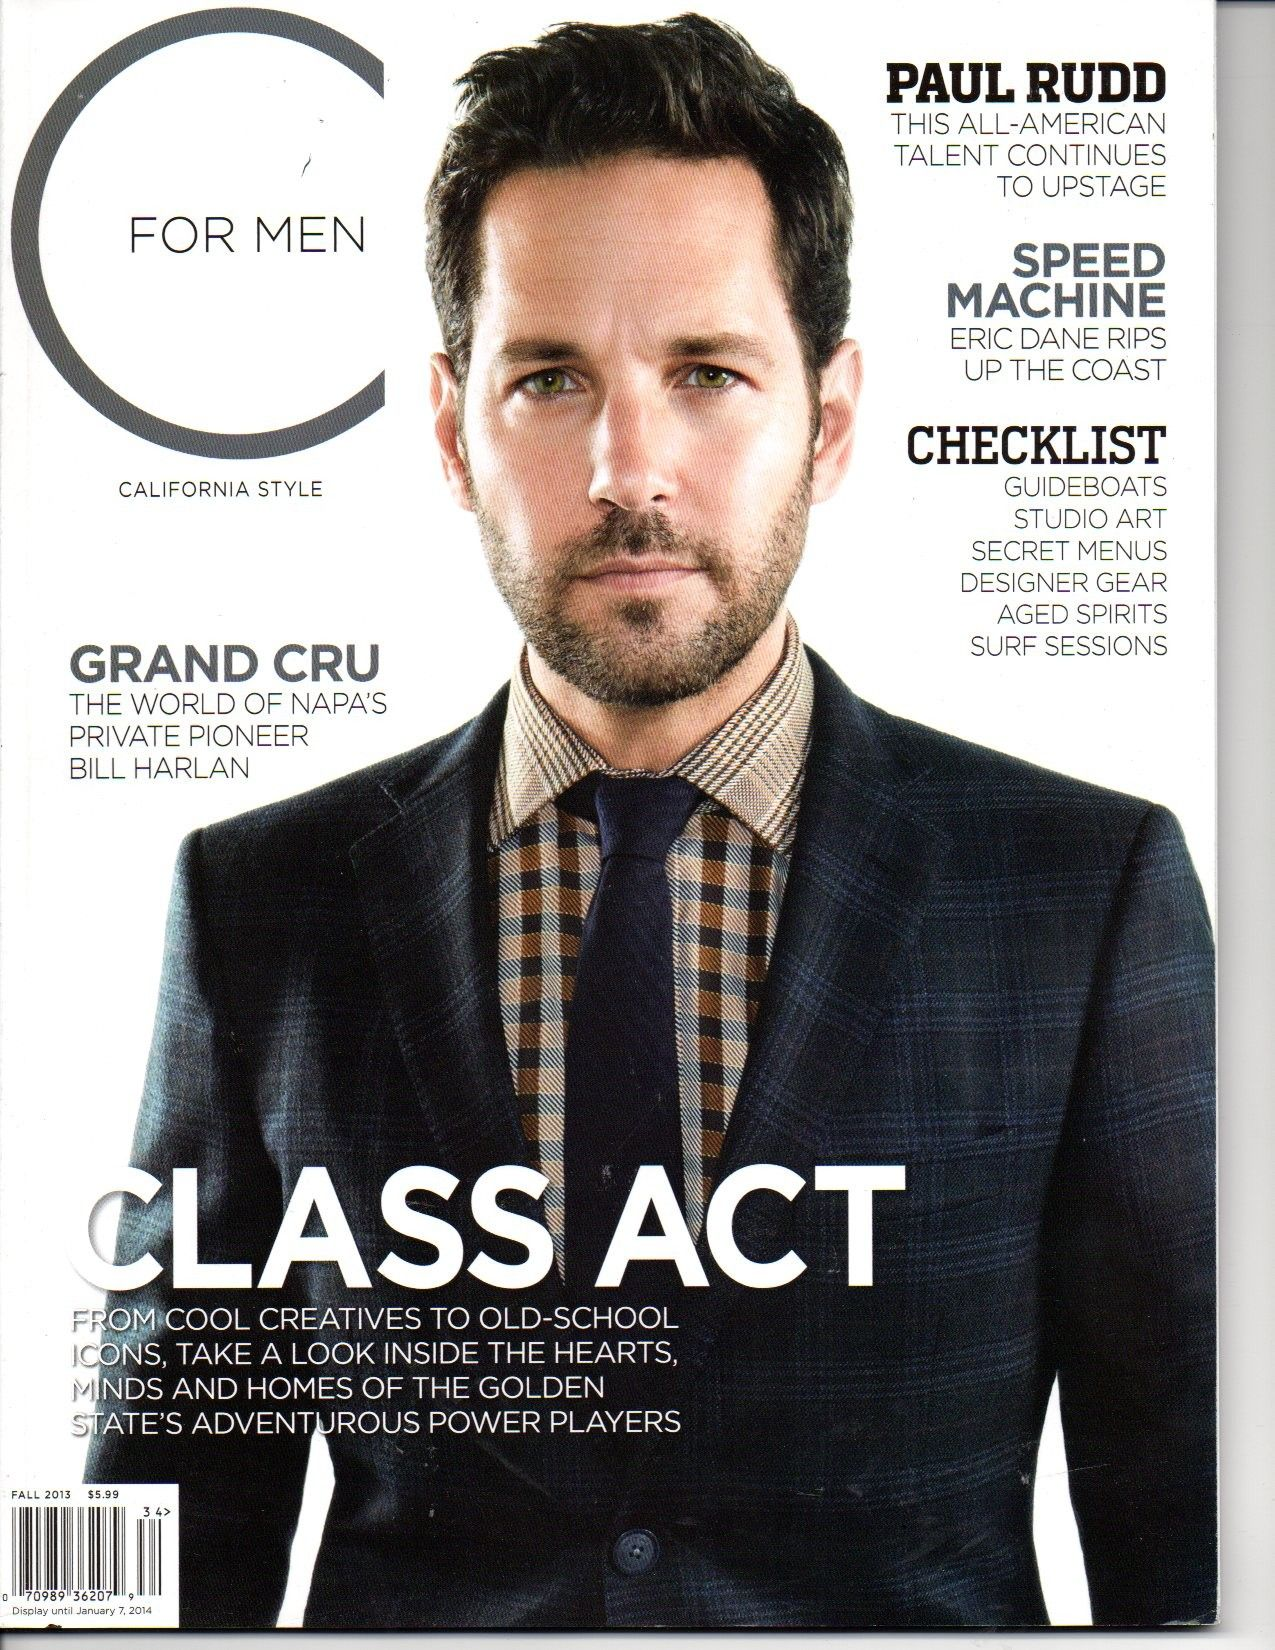 Fit Mag for Men - Magazine Issues on Men's Health & Fitness on the ...